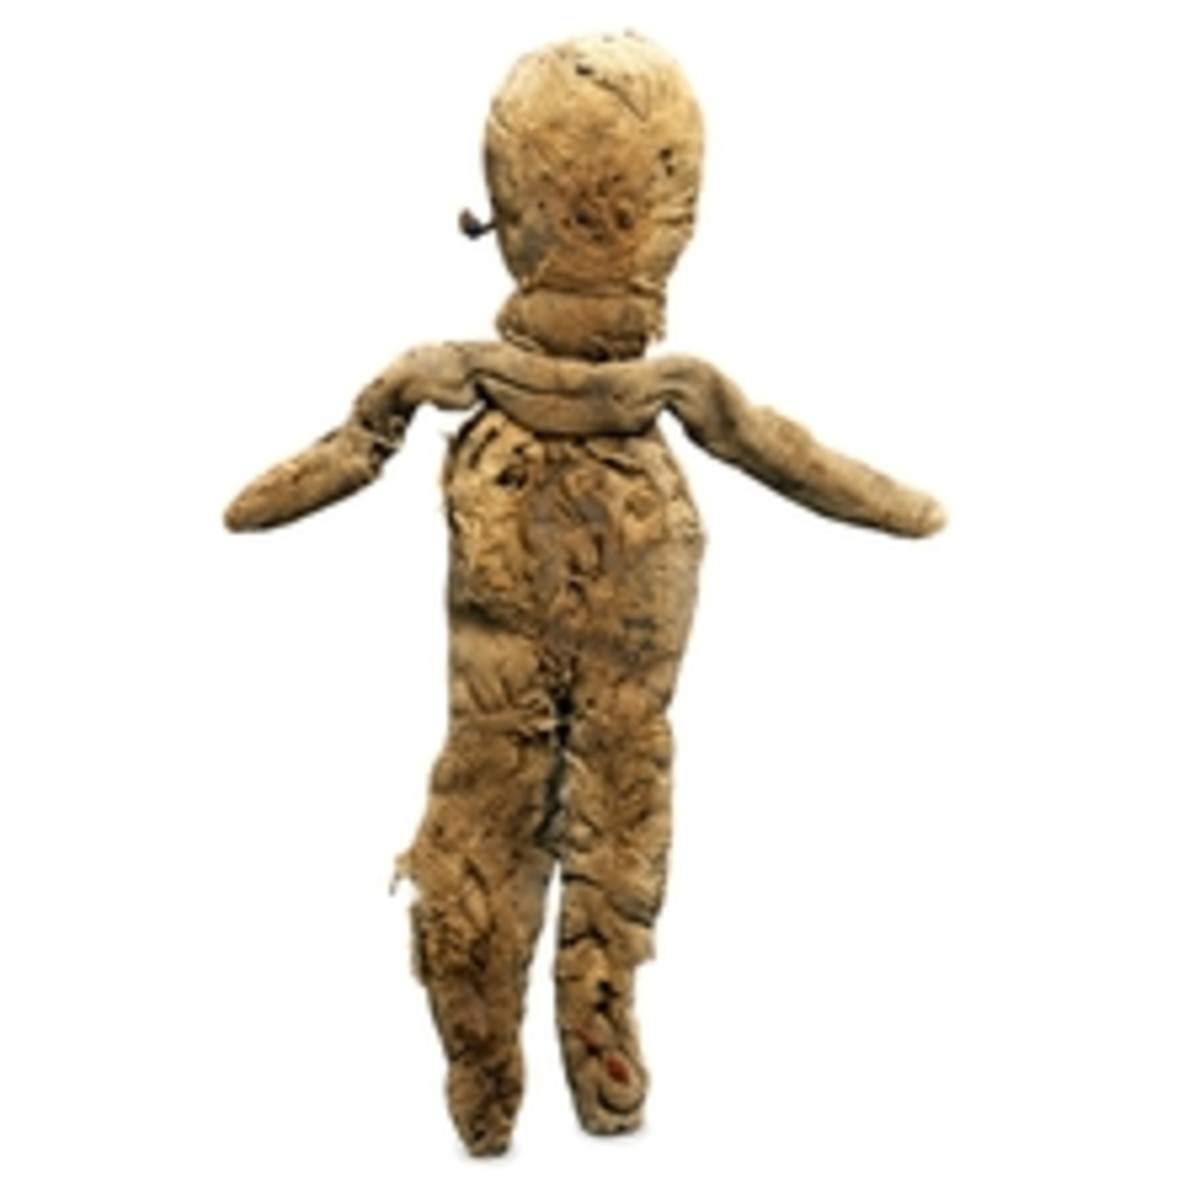 Roman Rag doll dated 1st-5th century CE.